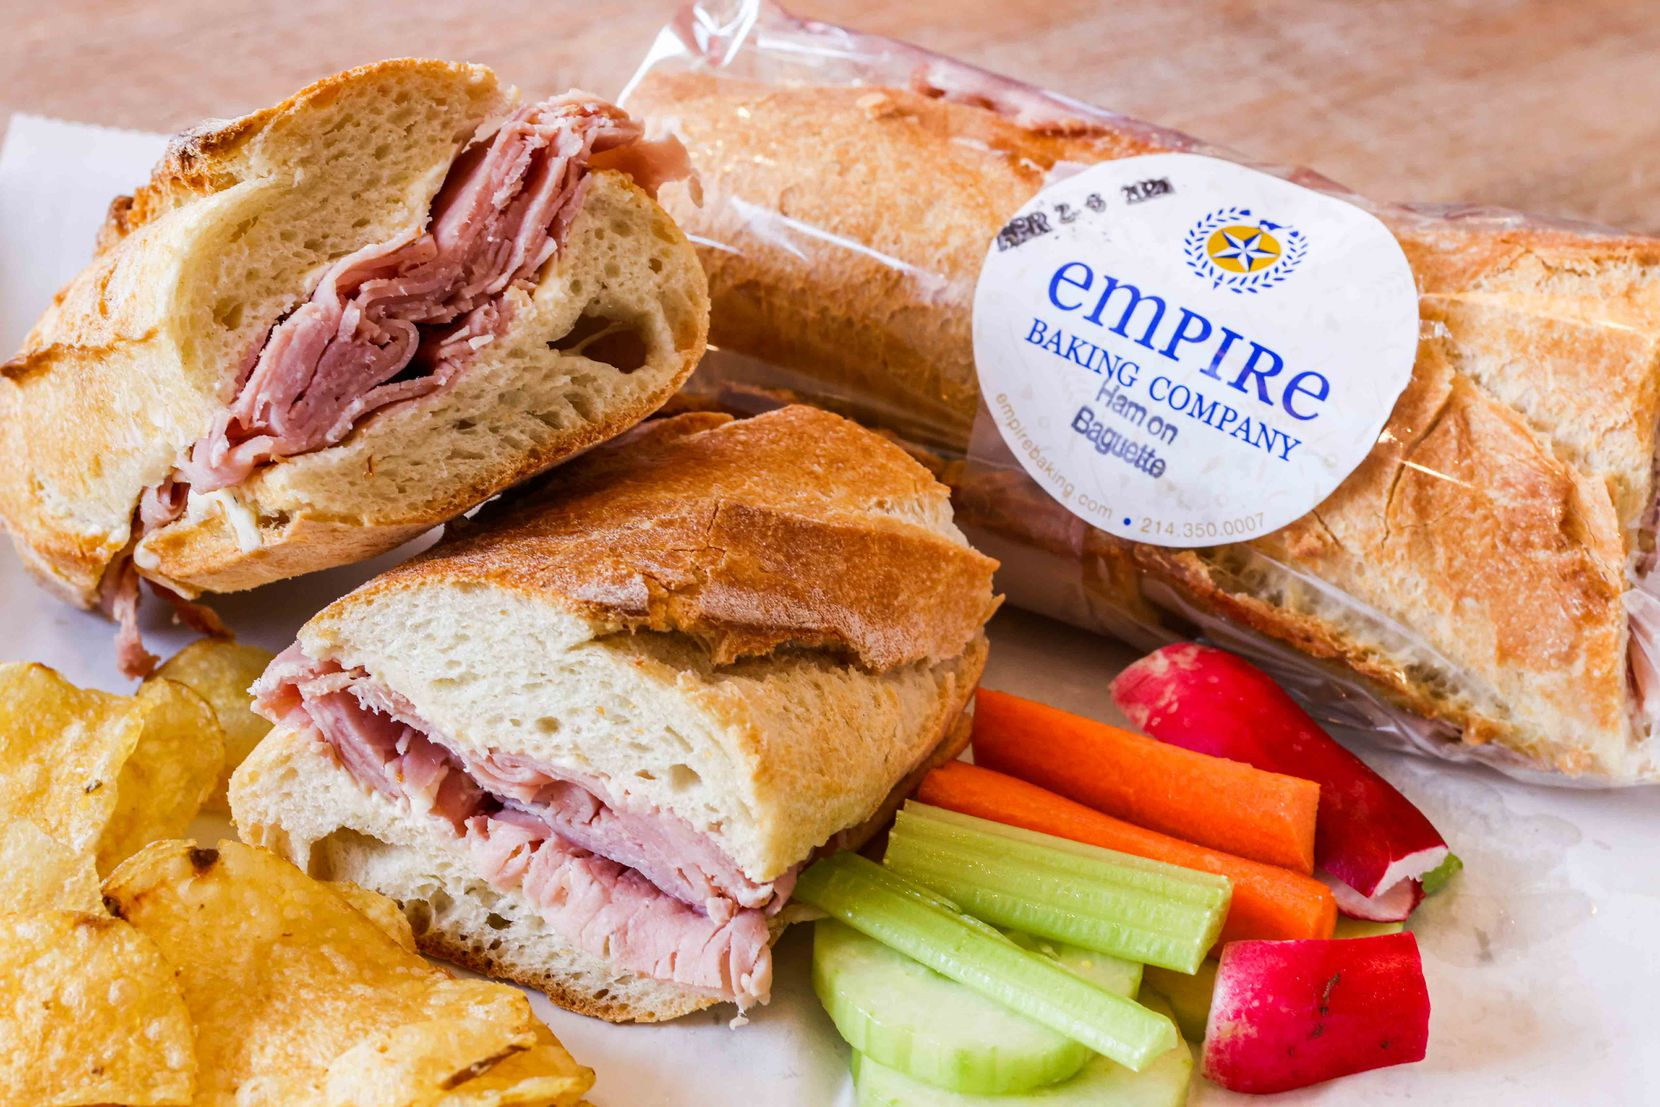 Ham on baguette is one of the most popular sandwiches at Empire Baking Company.